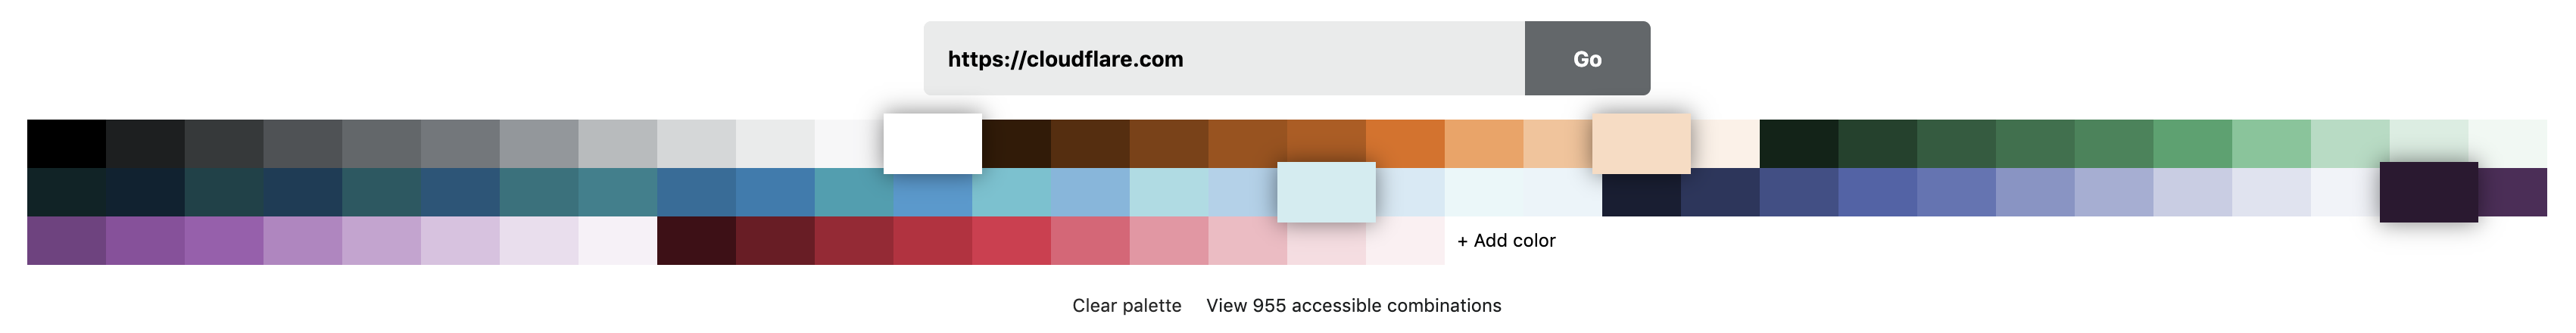 Importing a color palette from a URL